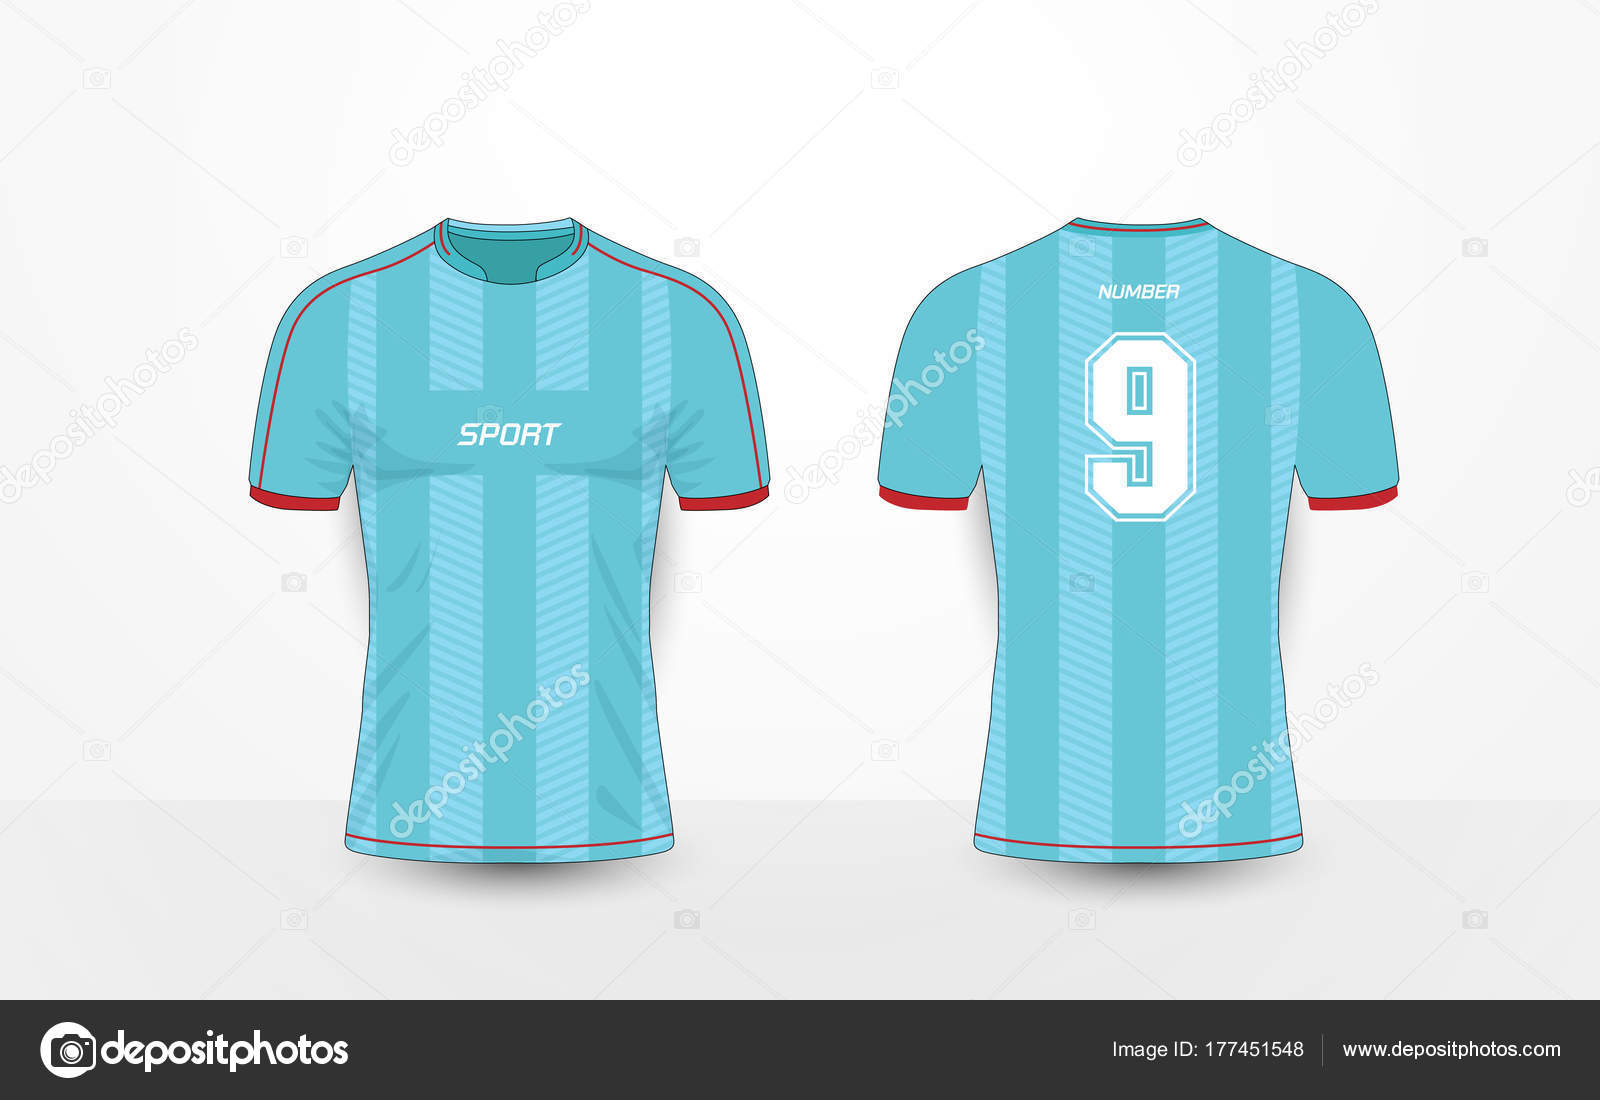 9a061aba85f7c8 Blue stripe and red pattern sport football kits